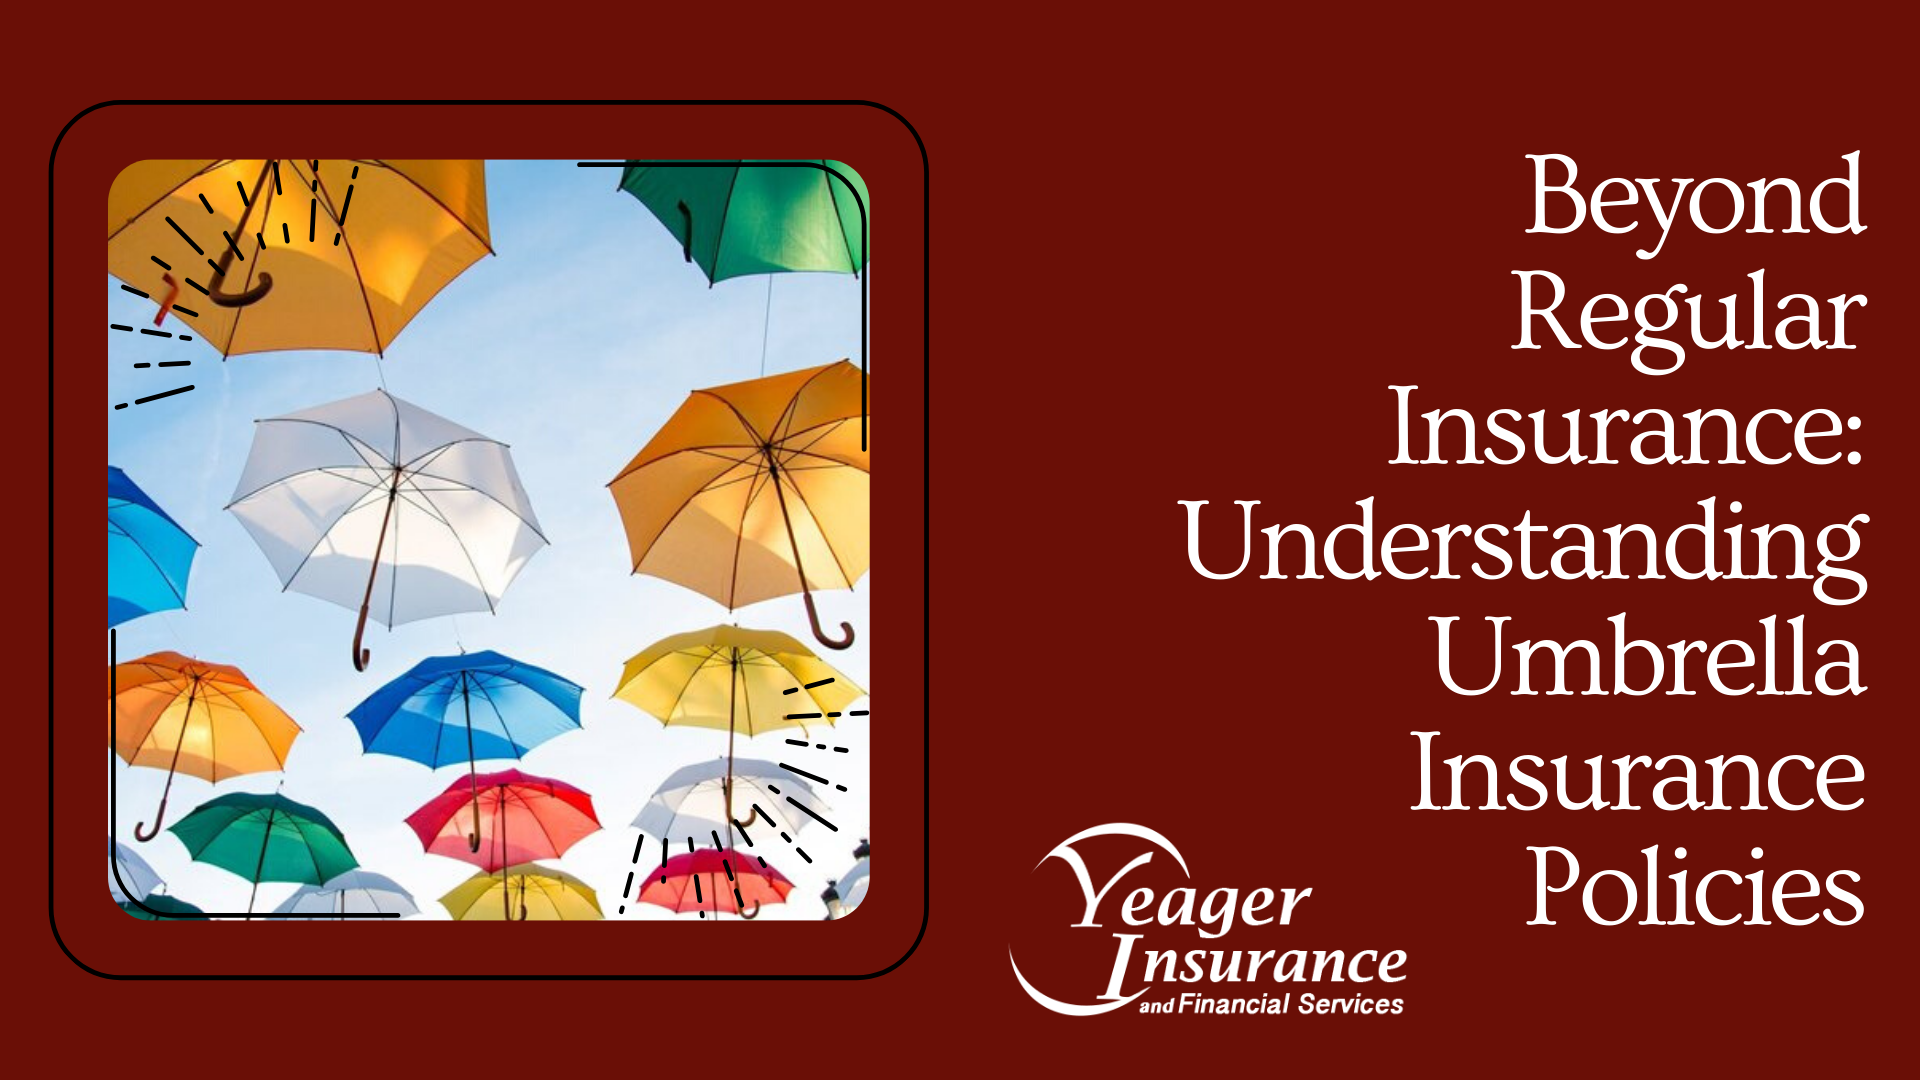 Beyond Regular Insurance: Understanding Umbrella Insurance Policies